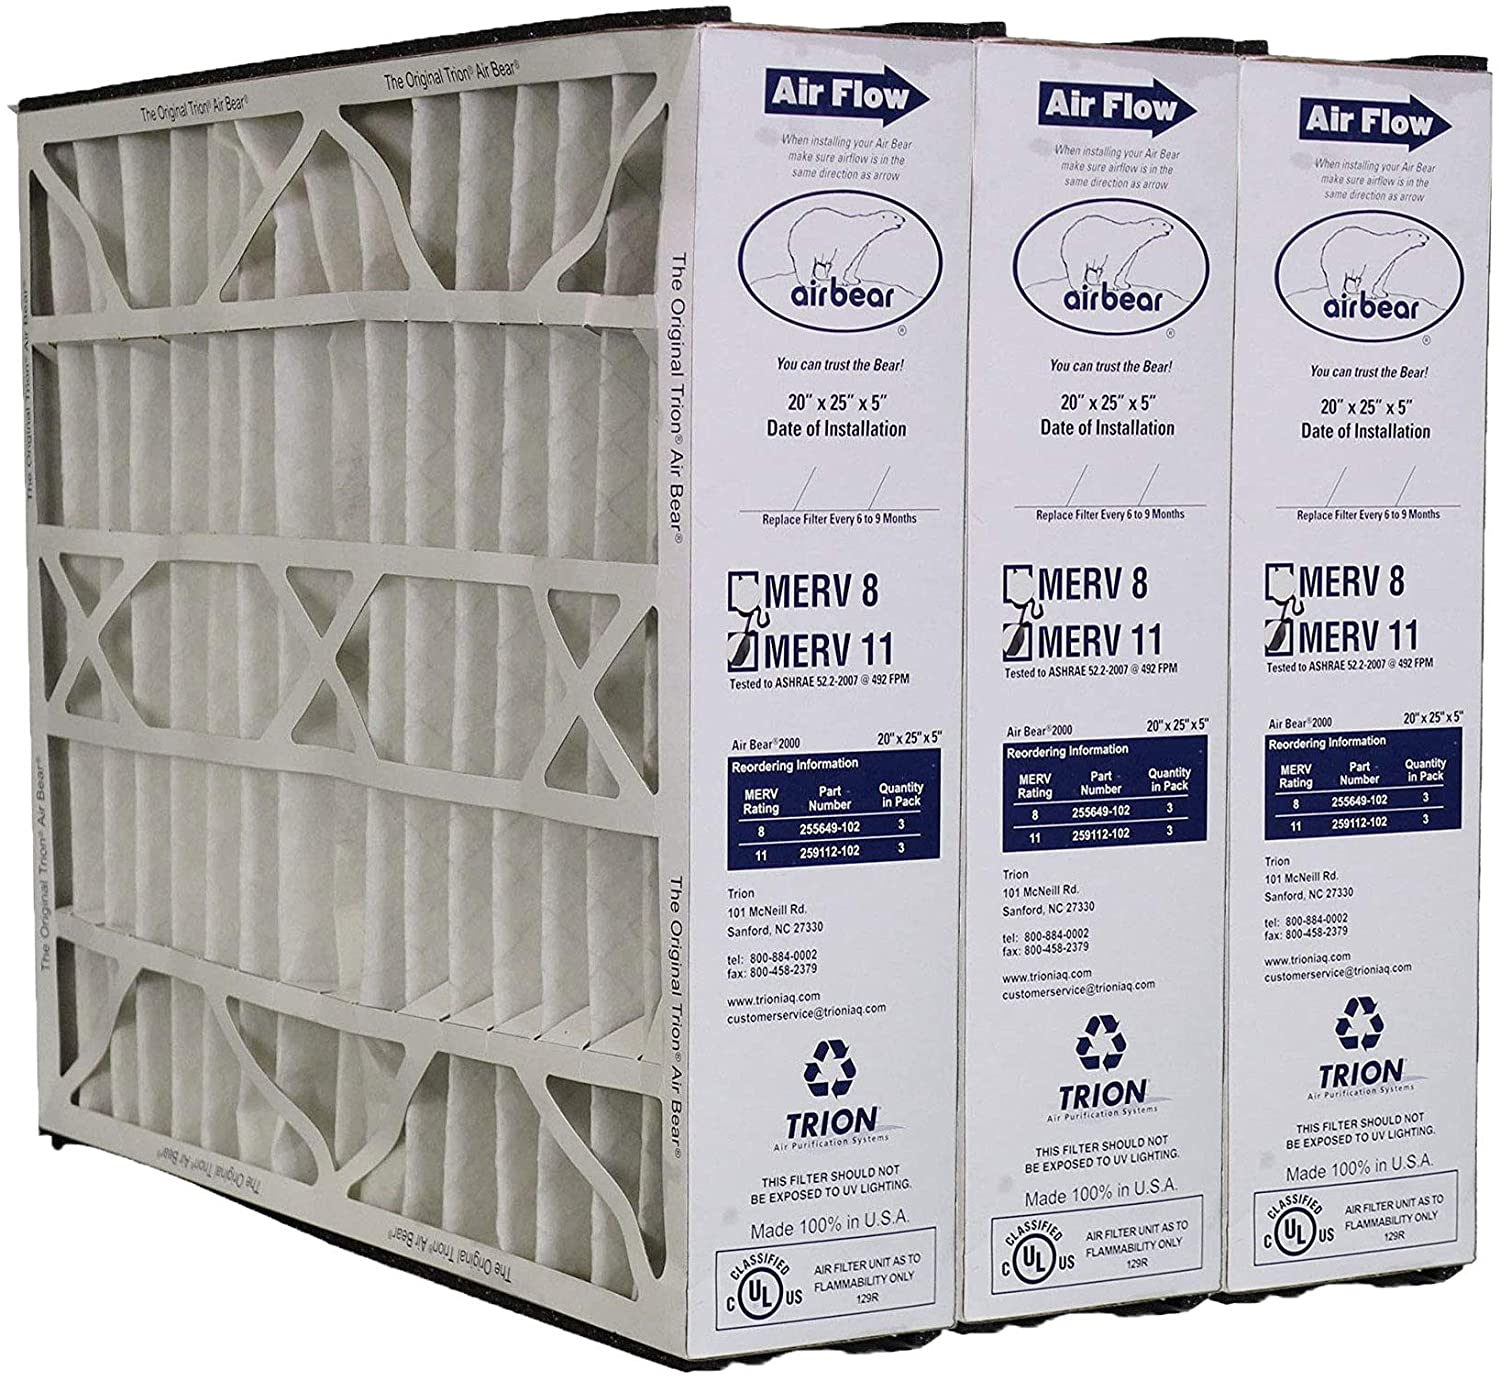 NEW Replacement Filter for Honeywell MERV 11 20x25x5 3-Pack Special